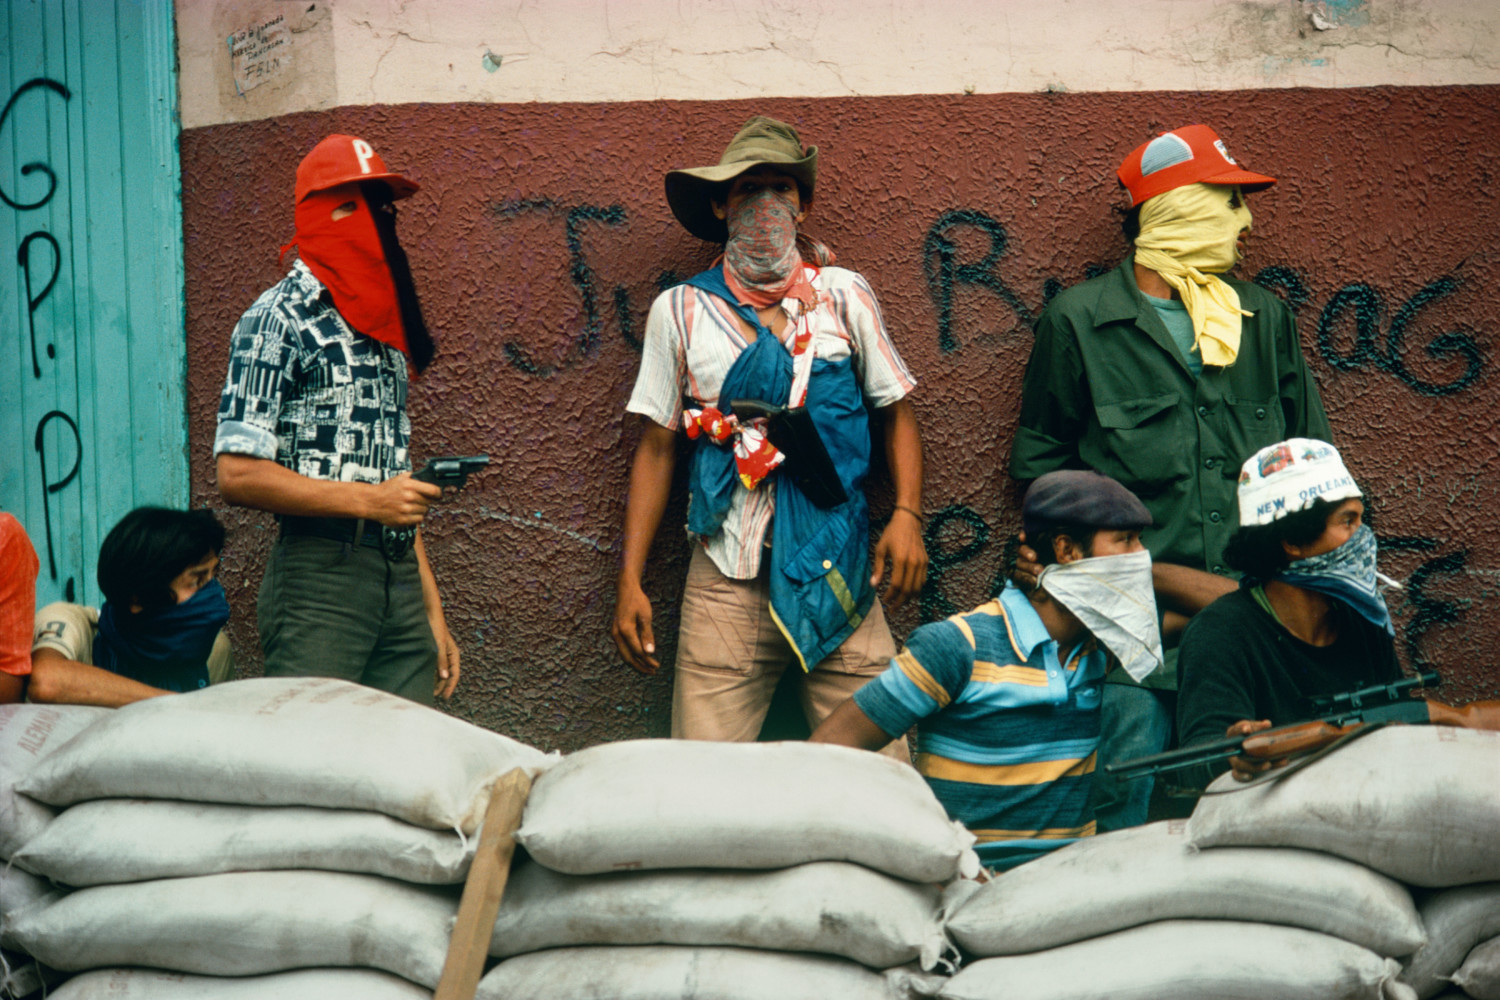 Nicaragua: From Still to Moving • Susan Meiselas • Magnum Photos